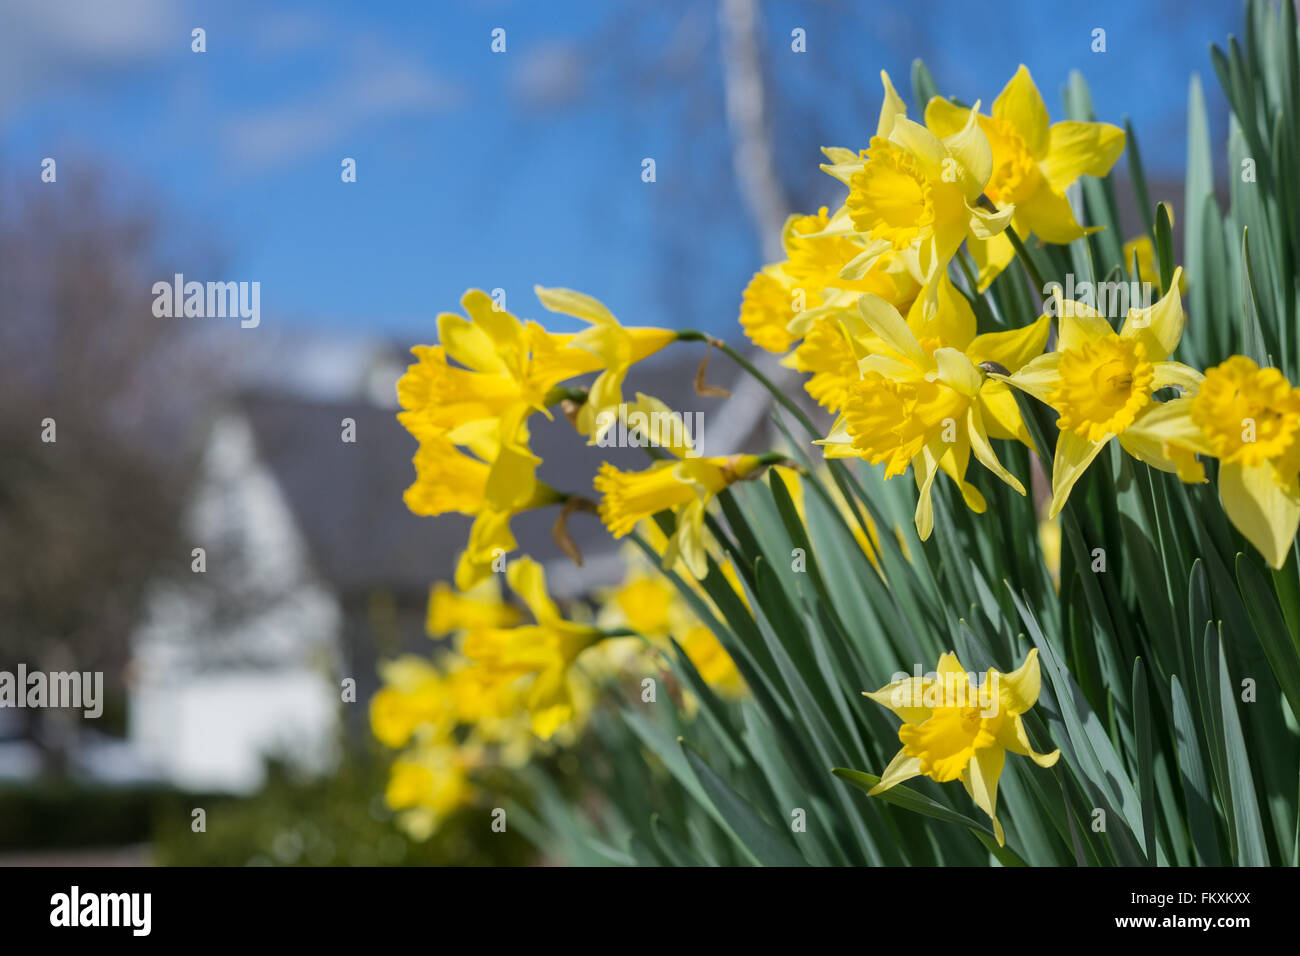 Sunny daffodils pop up against a bright blue sky, with a home burred in the background. - Stock Image